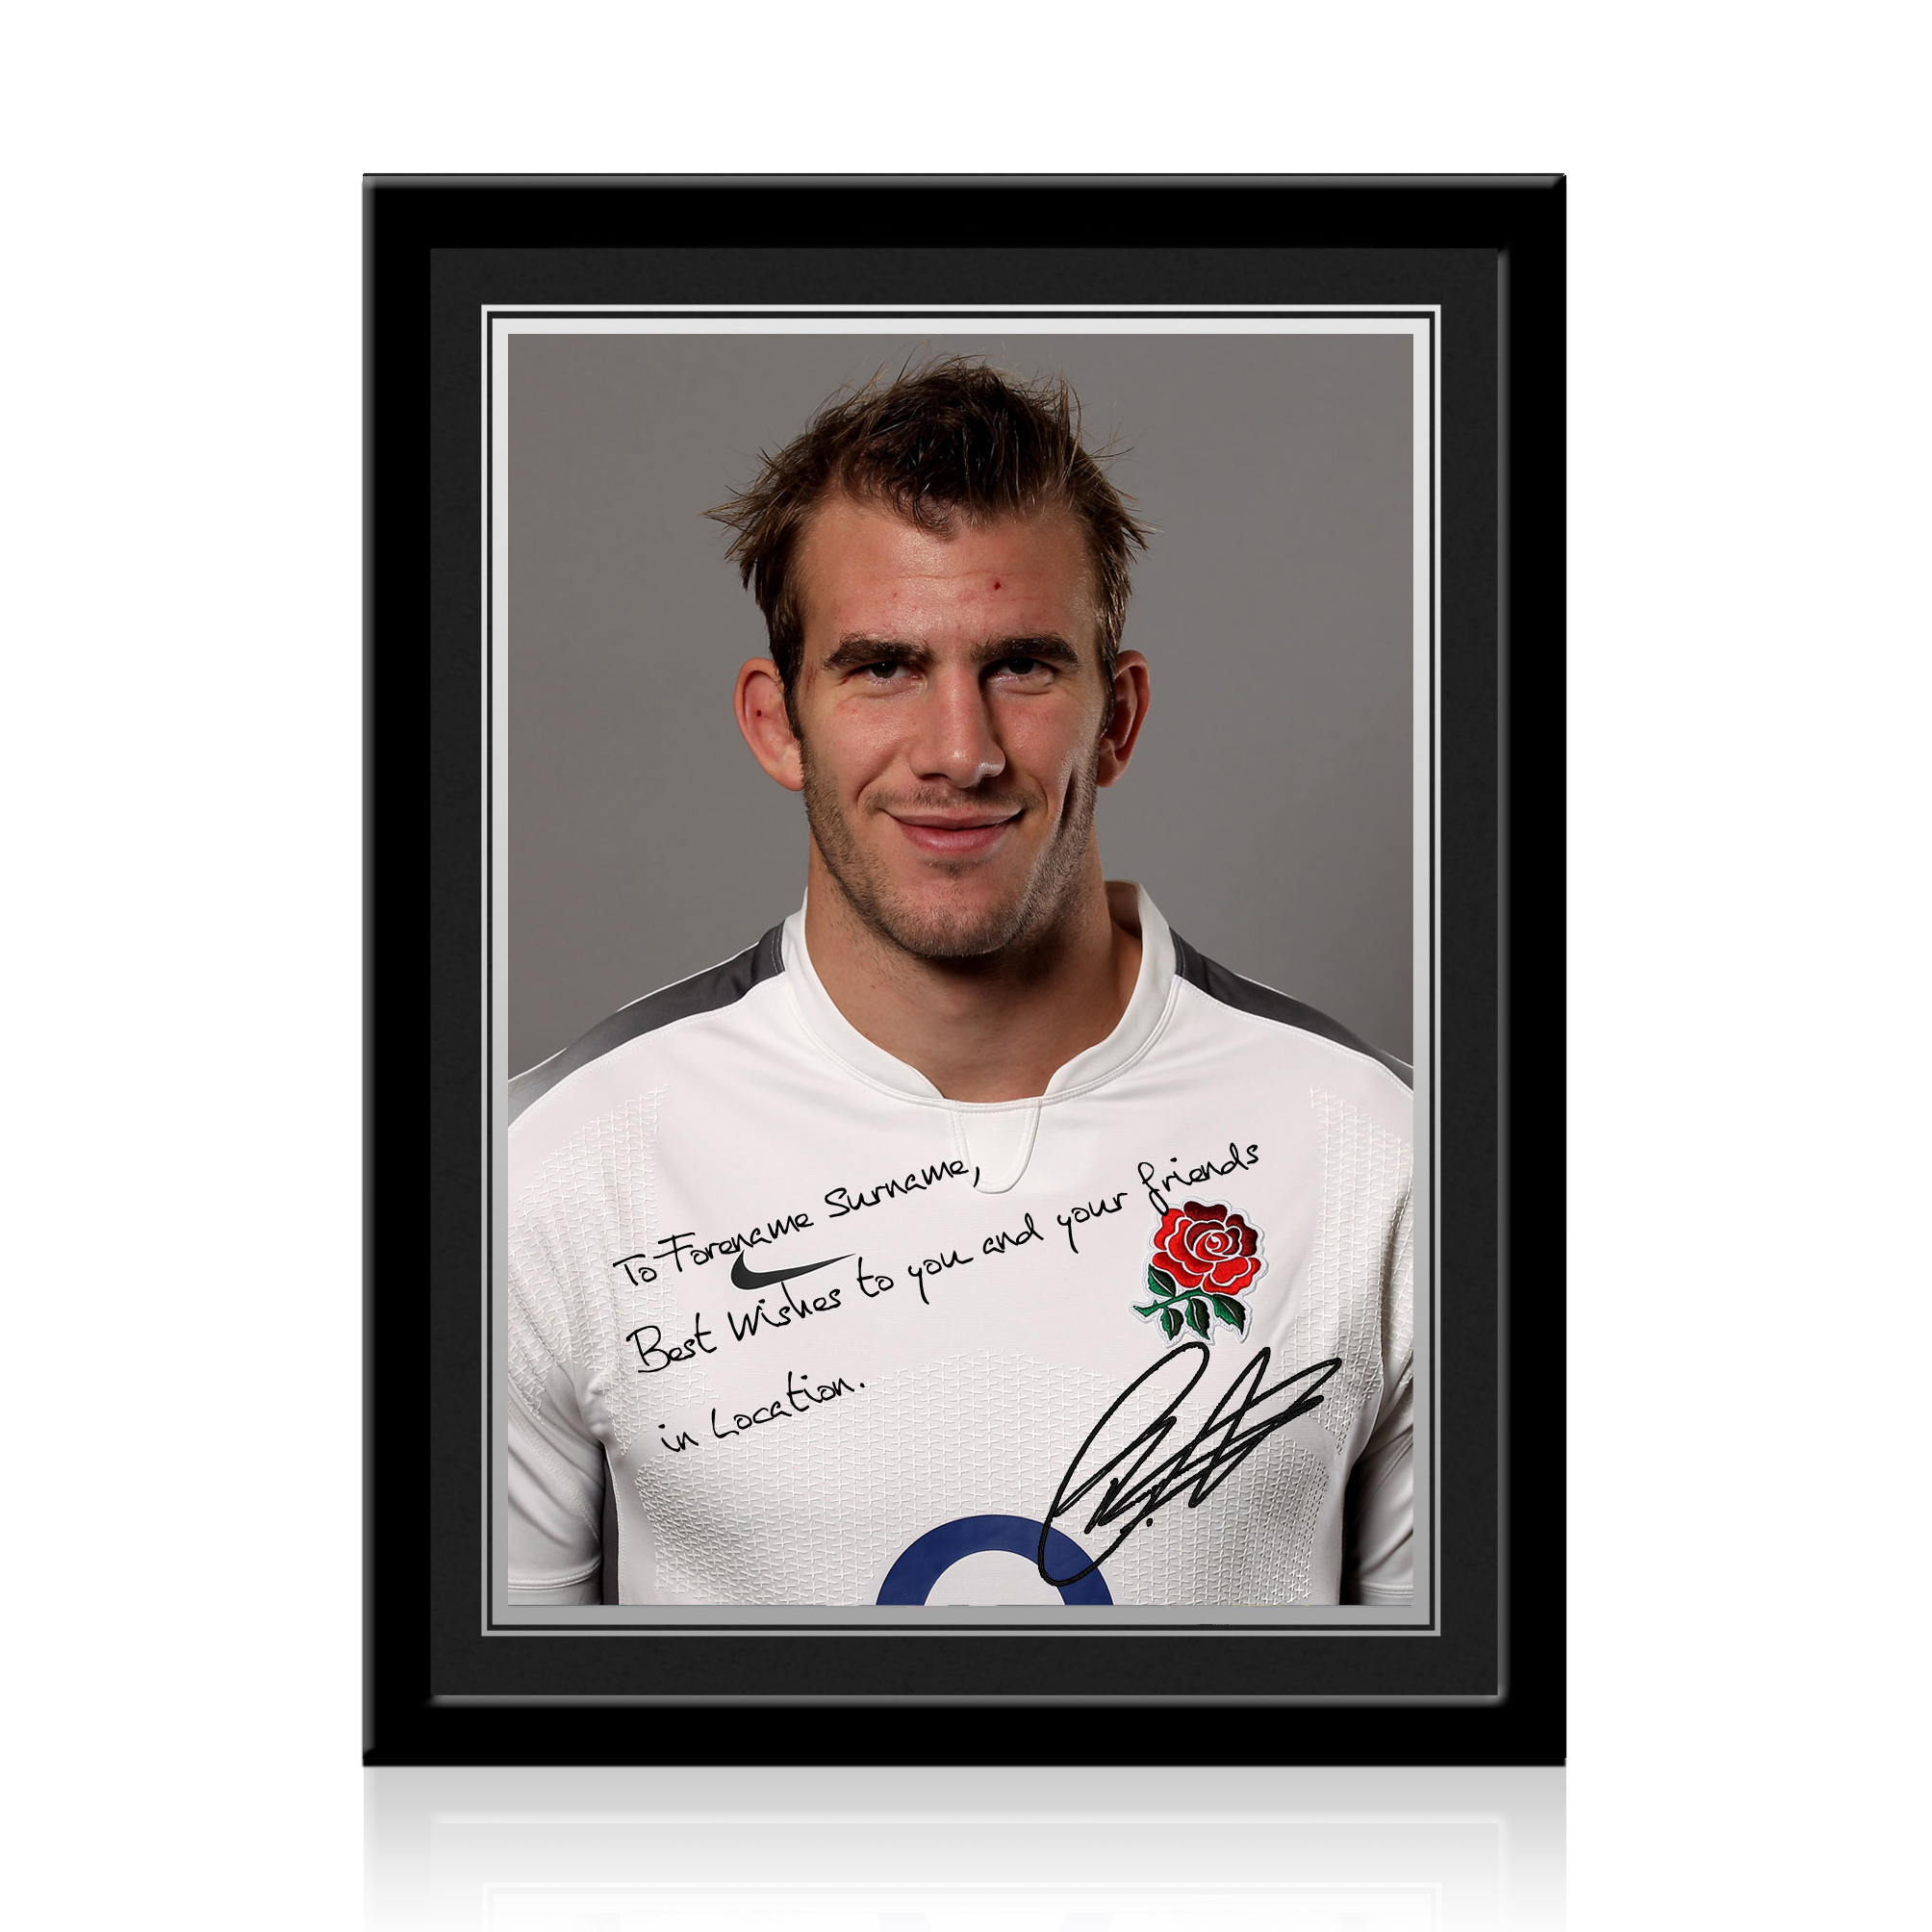 England Rugby Personalised Signature Print Framed - Croft